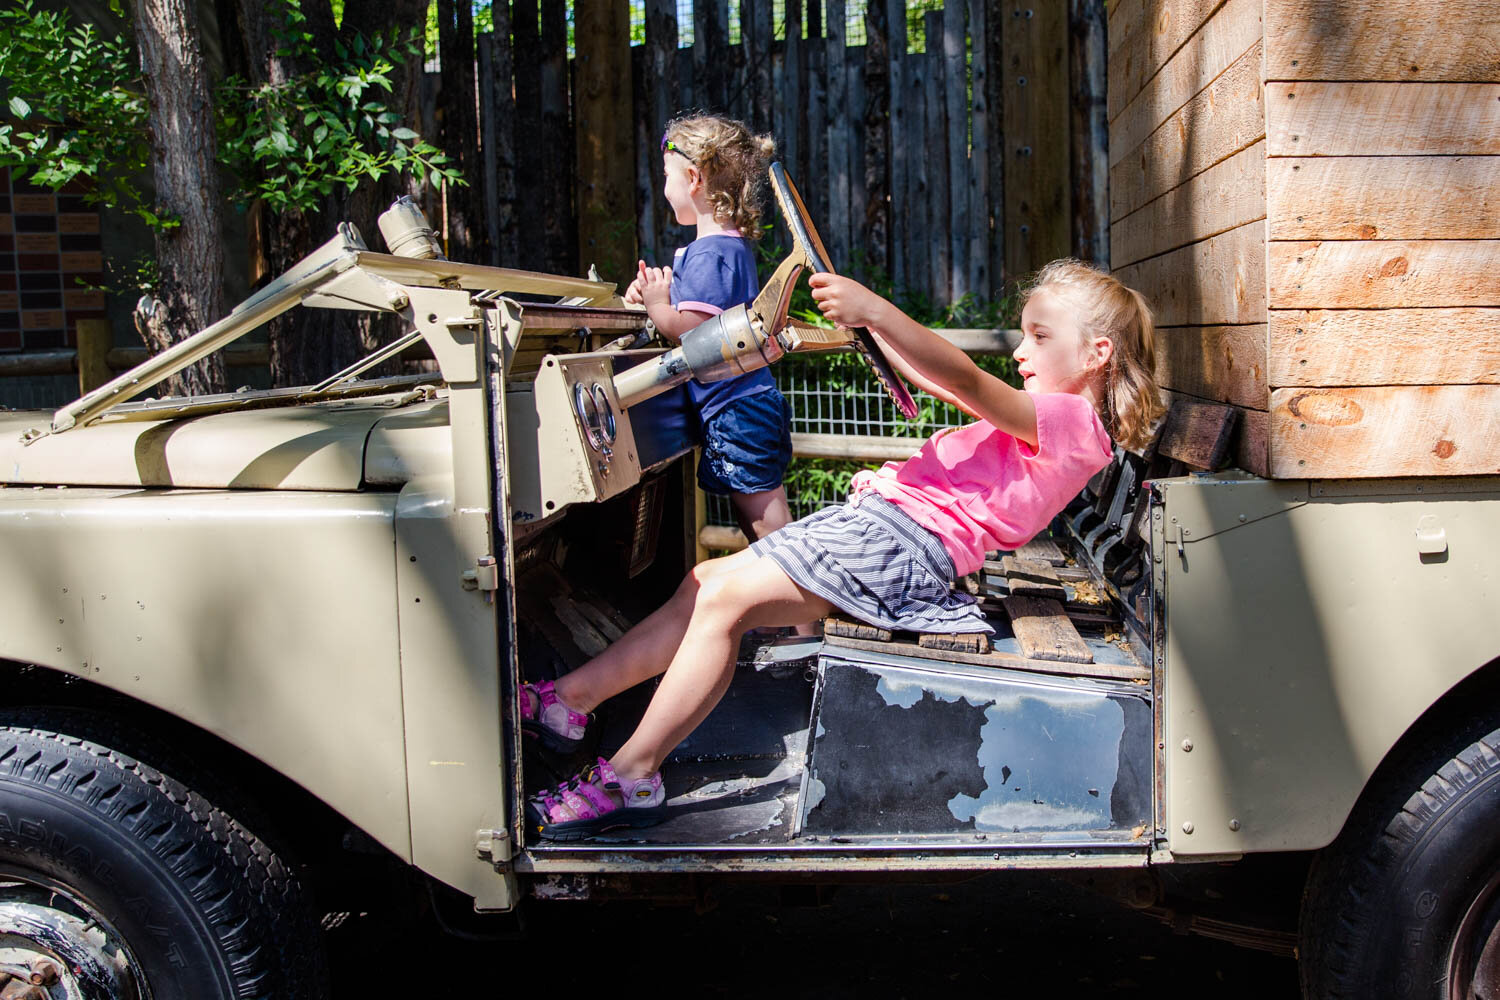 Two girls riding the jeep at Zoo boise for pretend.